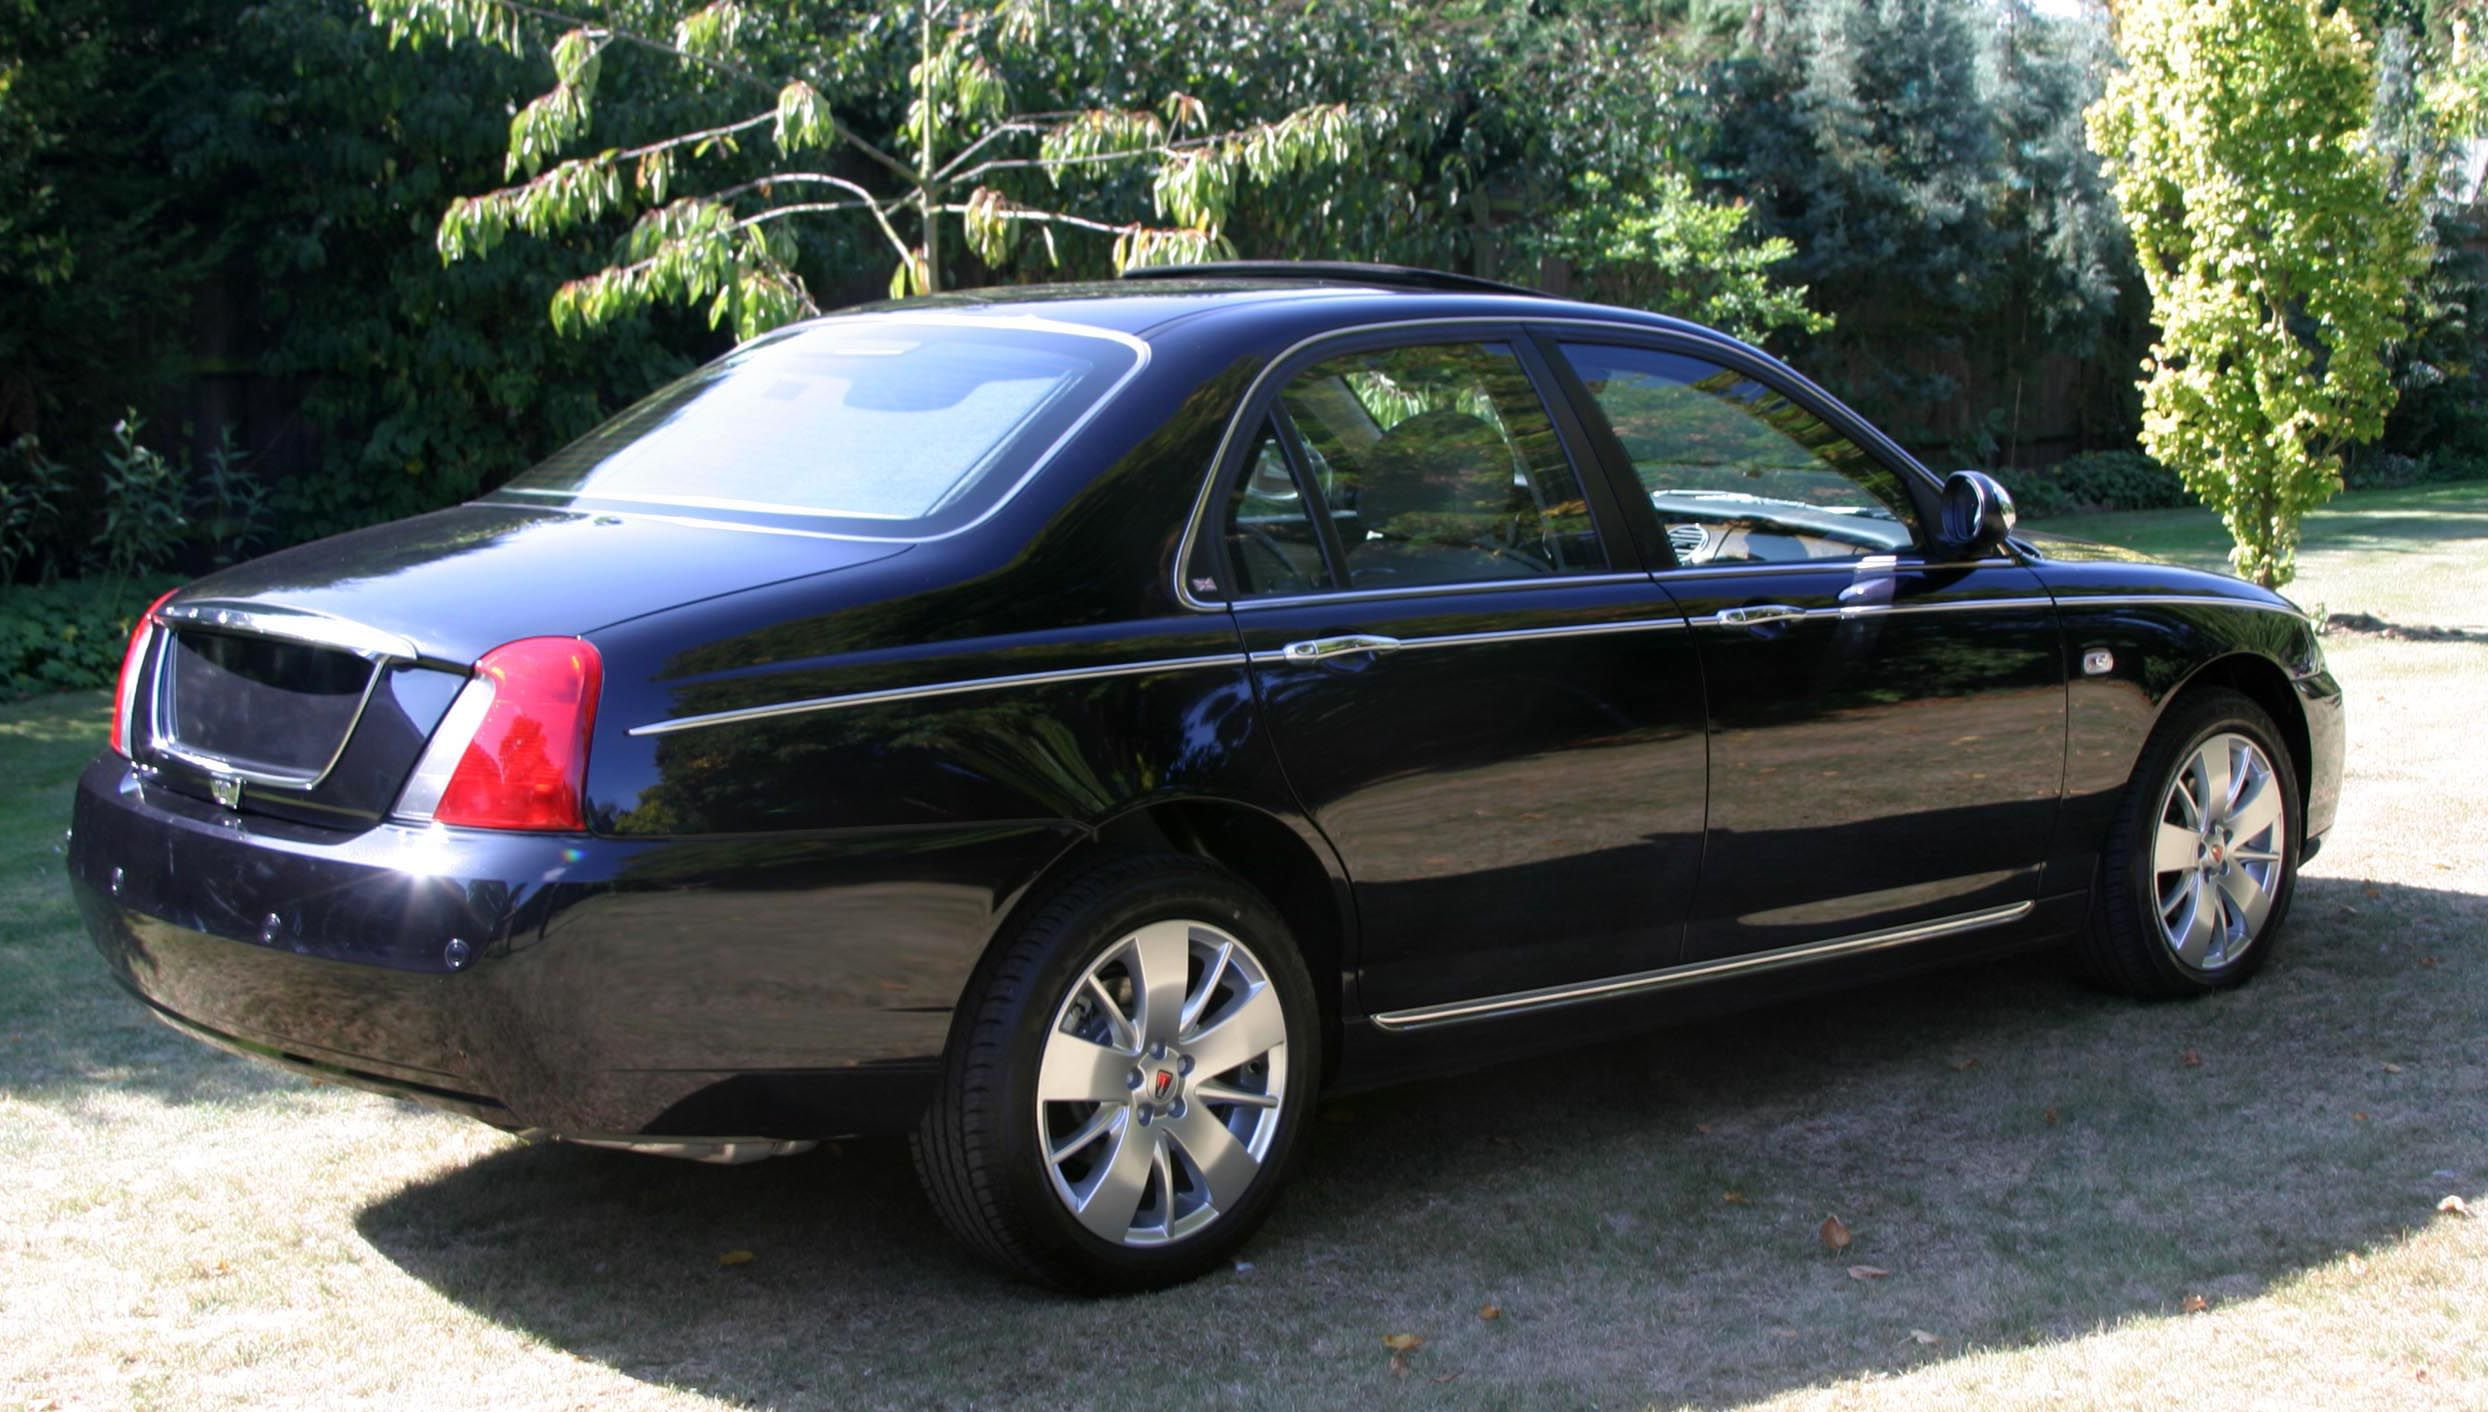 rover 75 v8 rover 75 mg zt cars cool cars classic cars. Black Bedroom Furniture Sets. Home Design Ideas